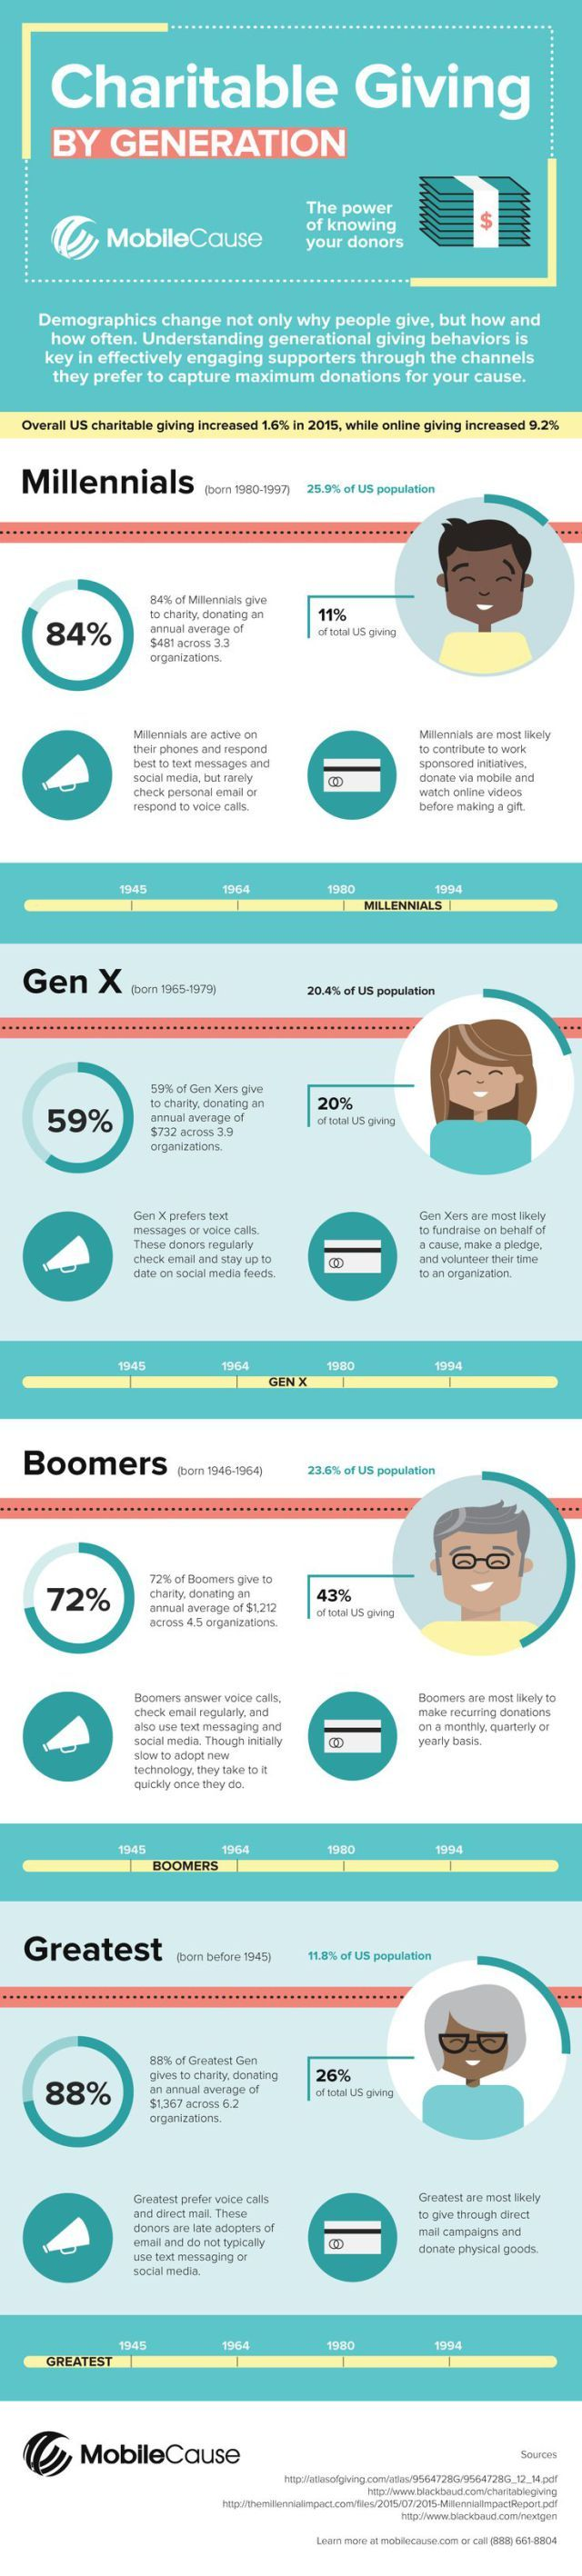 fundraising infographic : fundraising infographic : Generational Giving Infographic | MobileCause…